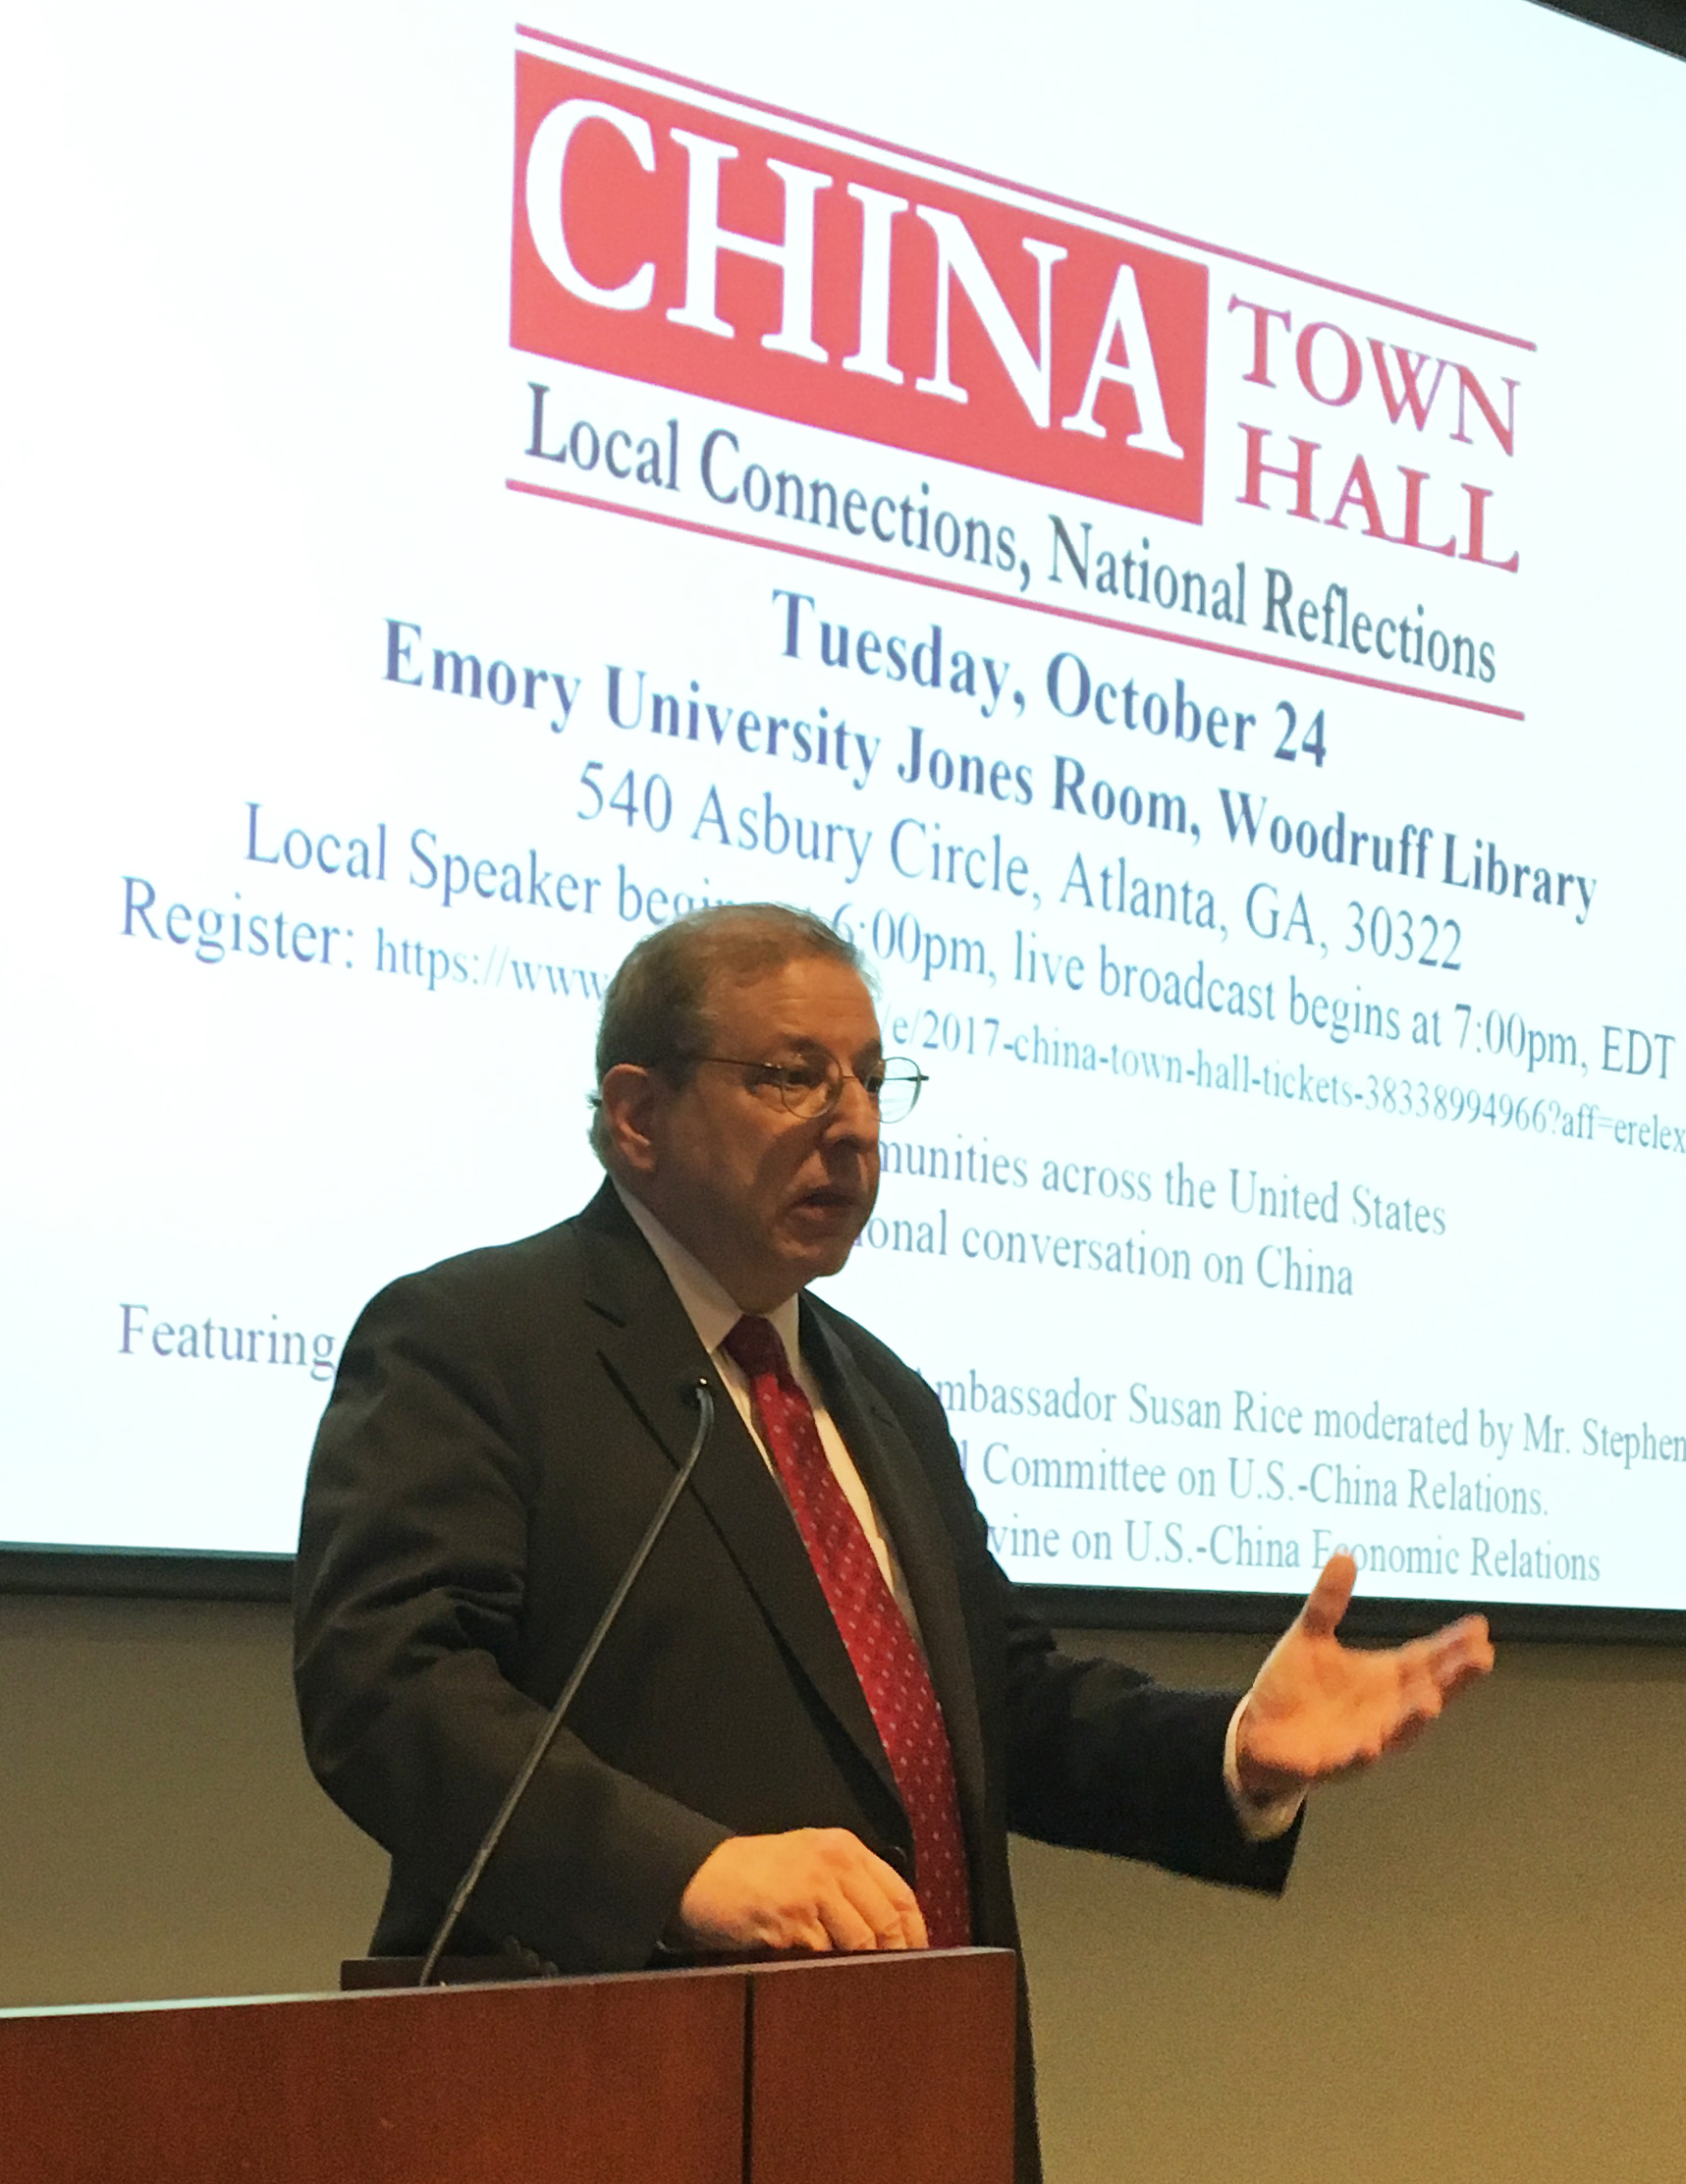 CRC Co-sponsors China Town Hall